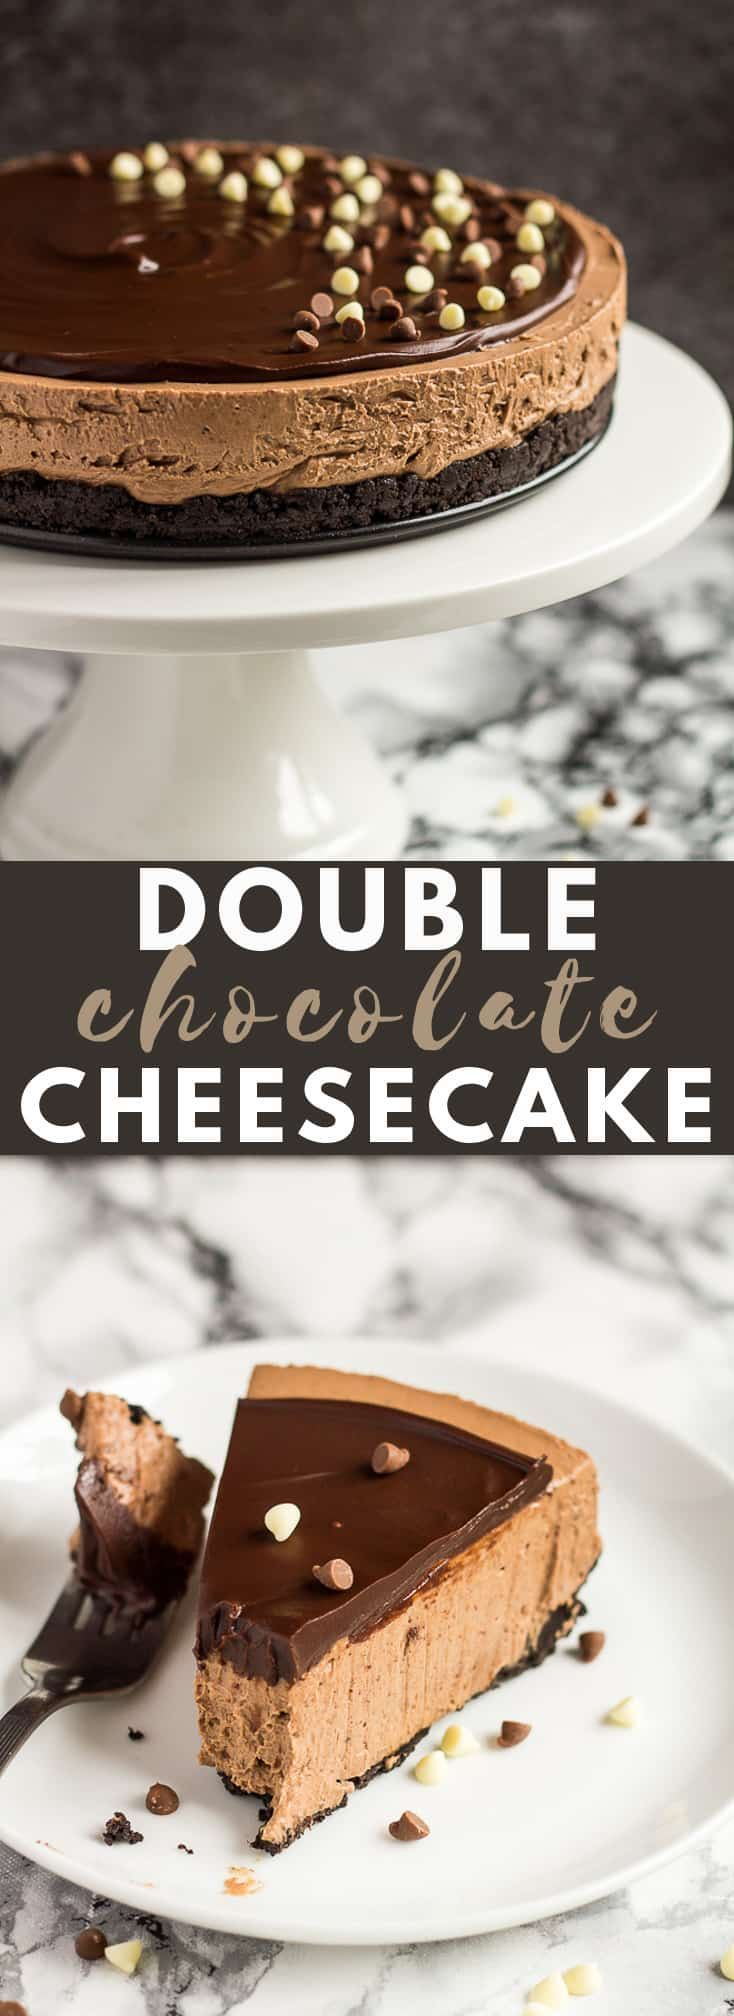 No-Bake Double Chocolate Cheesecake – Deliciously creamy NO-BAKE chocolate chee…